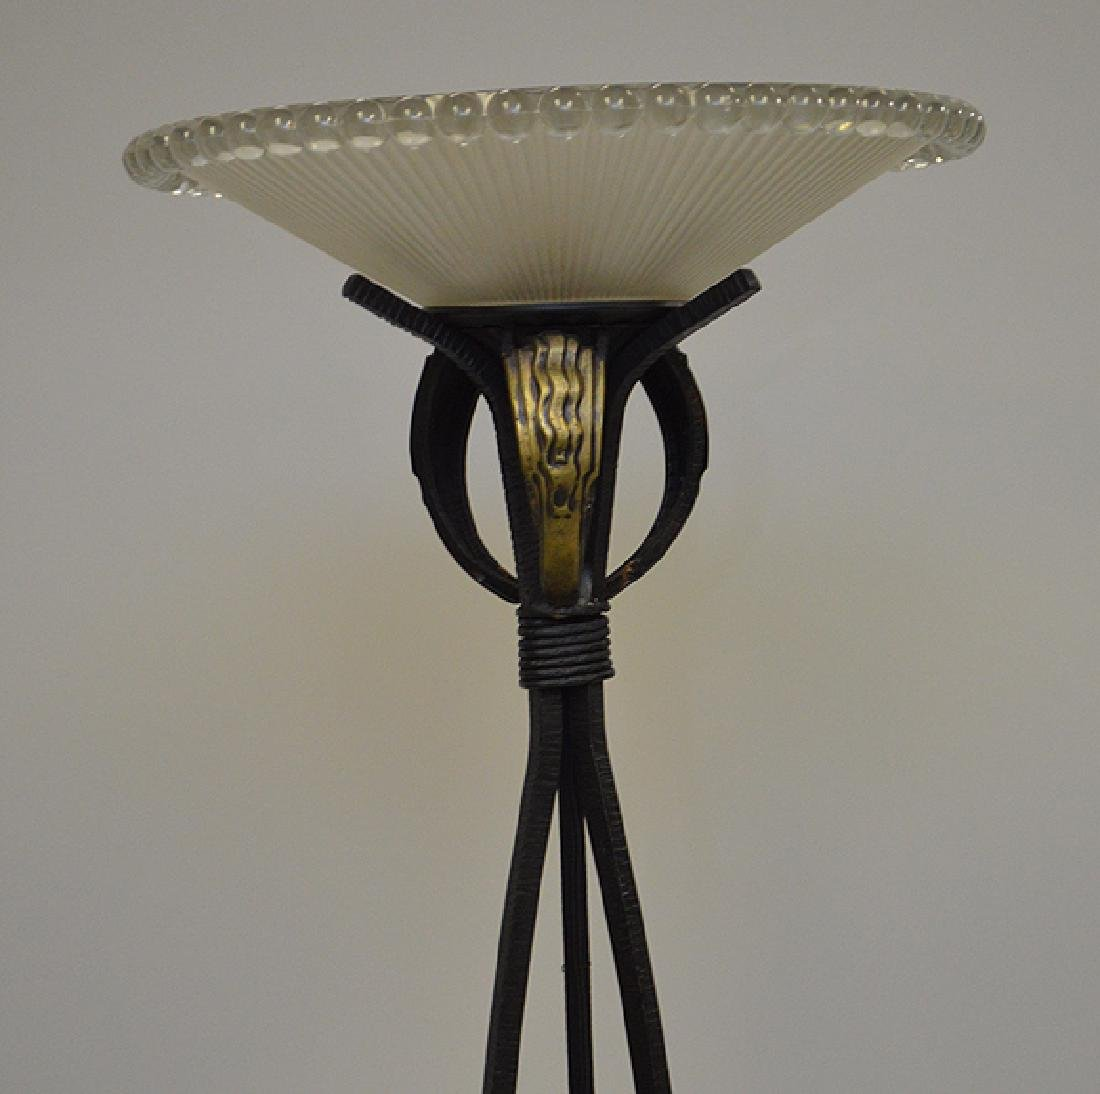 Deco Black iron floor lamp with reeded glass shade, - 2